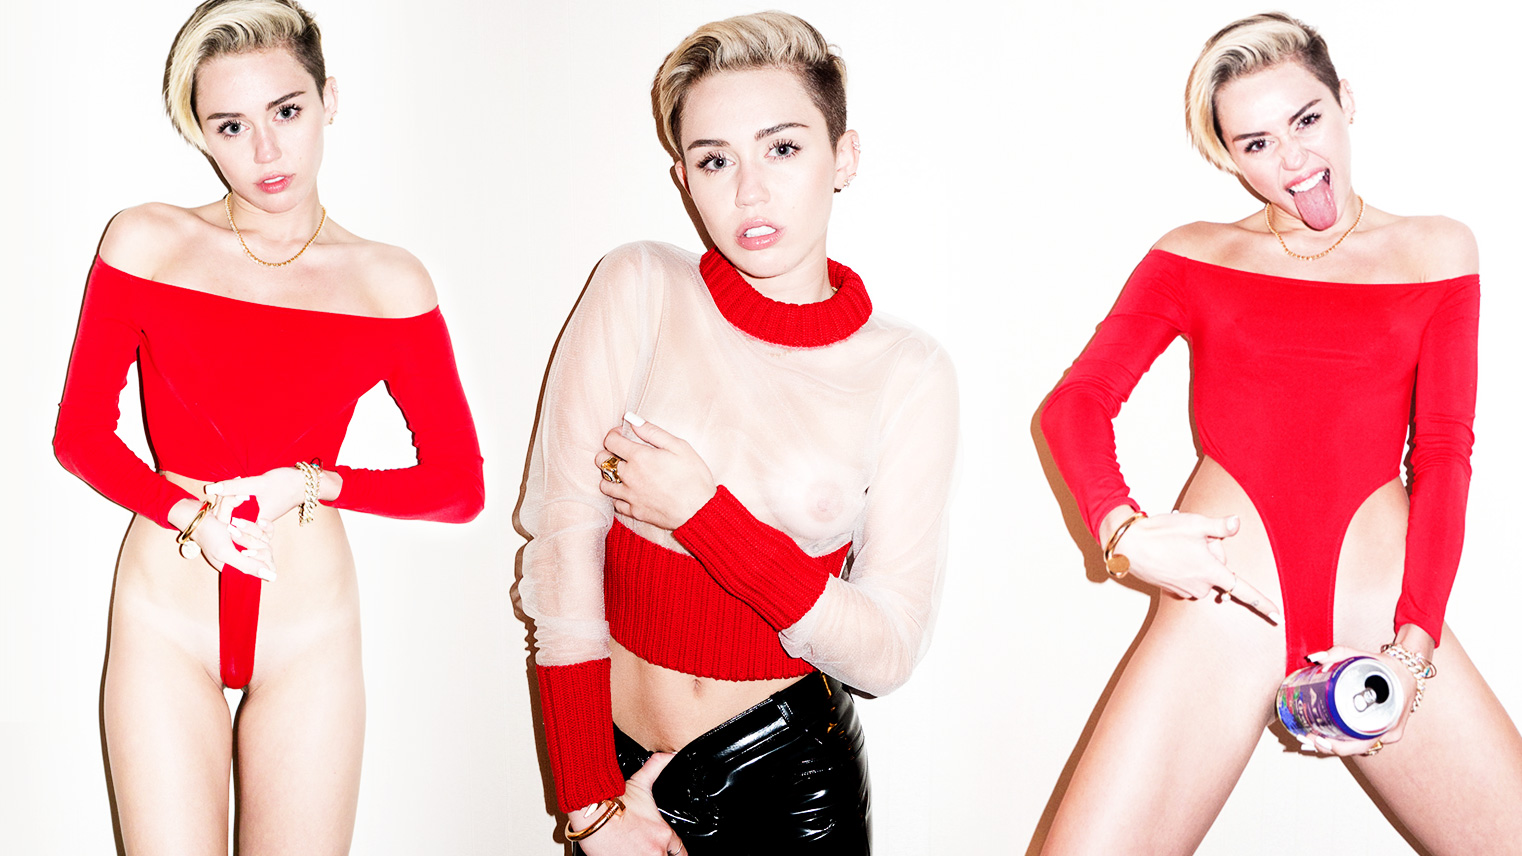 Miley cyrus shoot nude — img 6